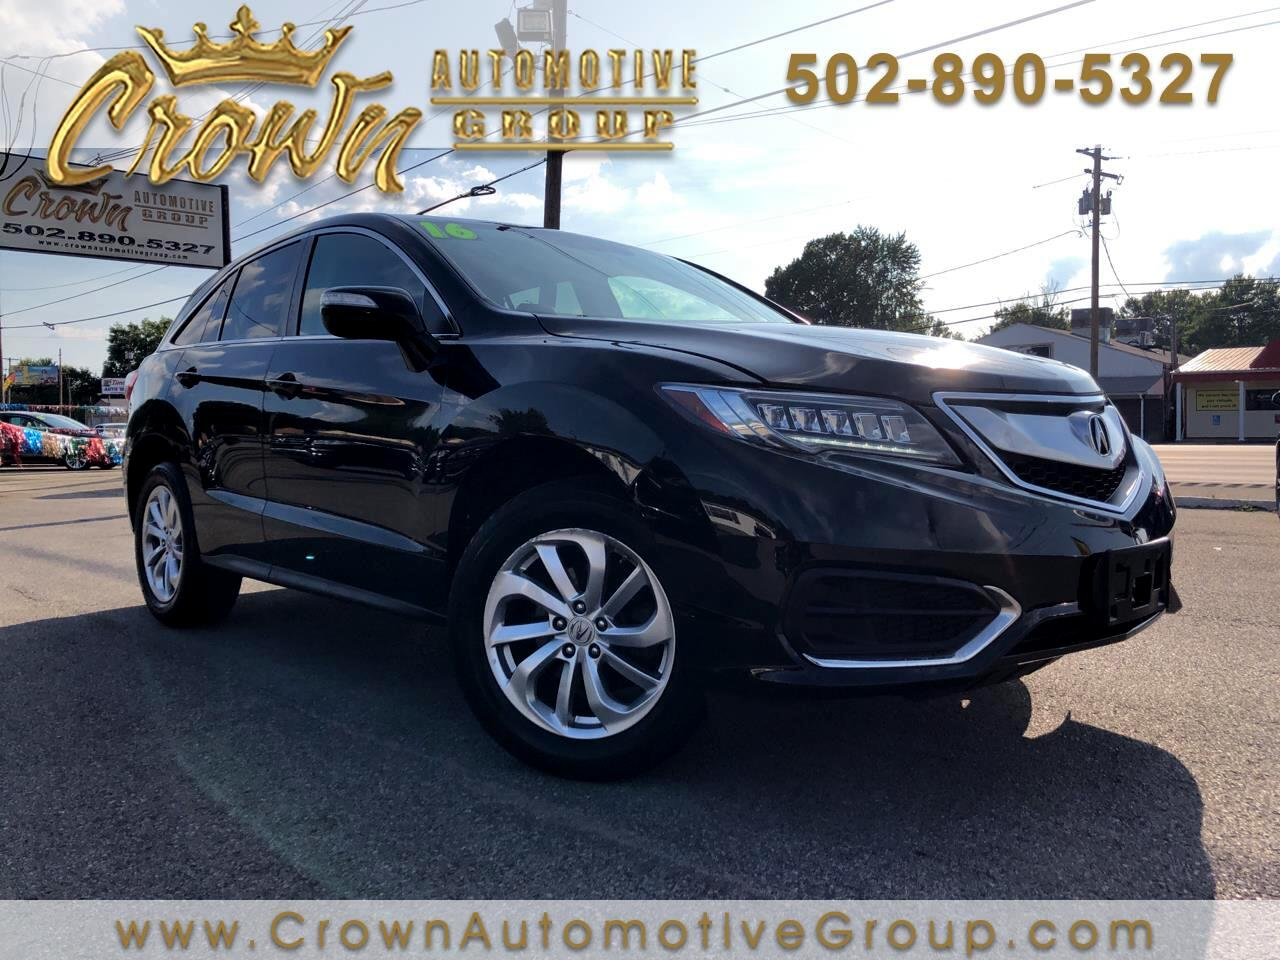 Cars For Sale Louisville Ky >> Used Cars For Sale Louisville Ky 40258 Crown Automotive Group